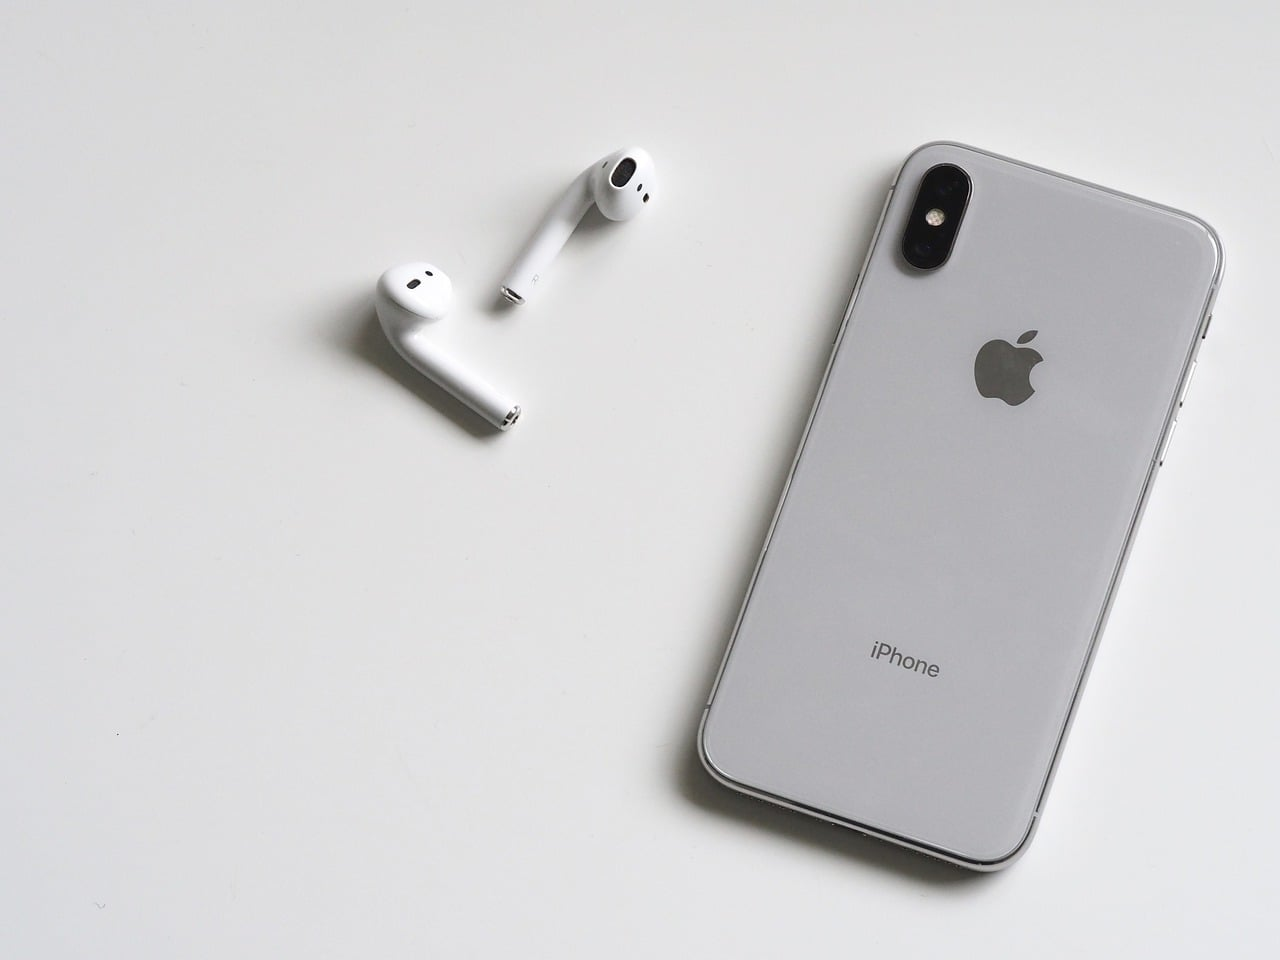 093068c88ad This New Report Suggests A Release Date For Apple's AirPods 2